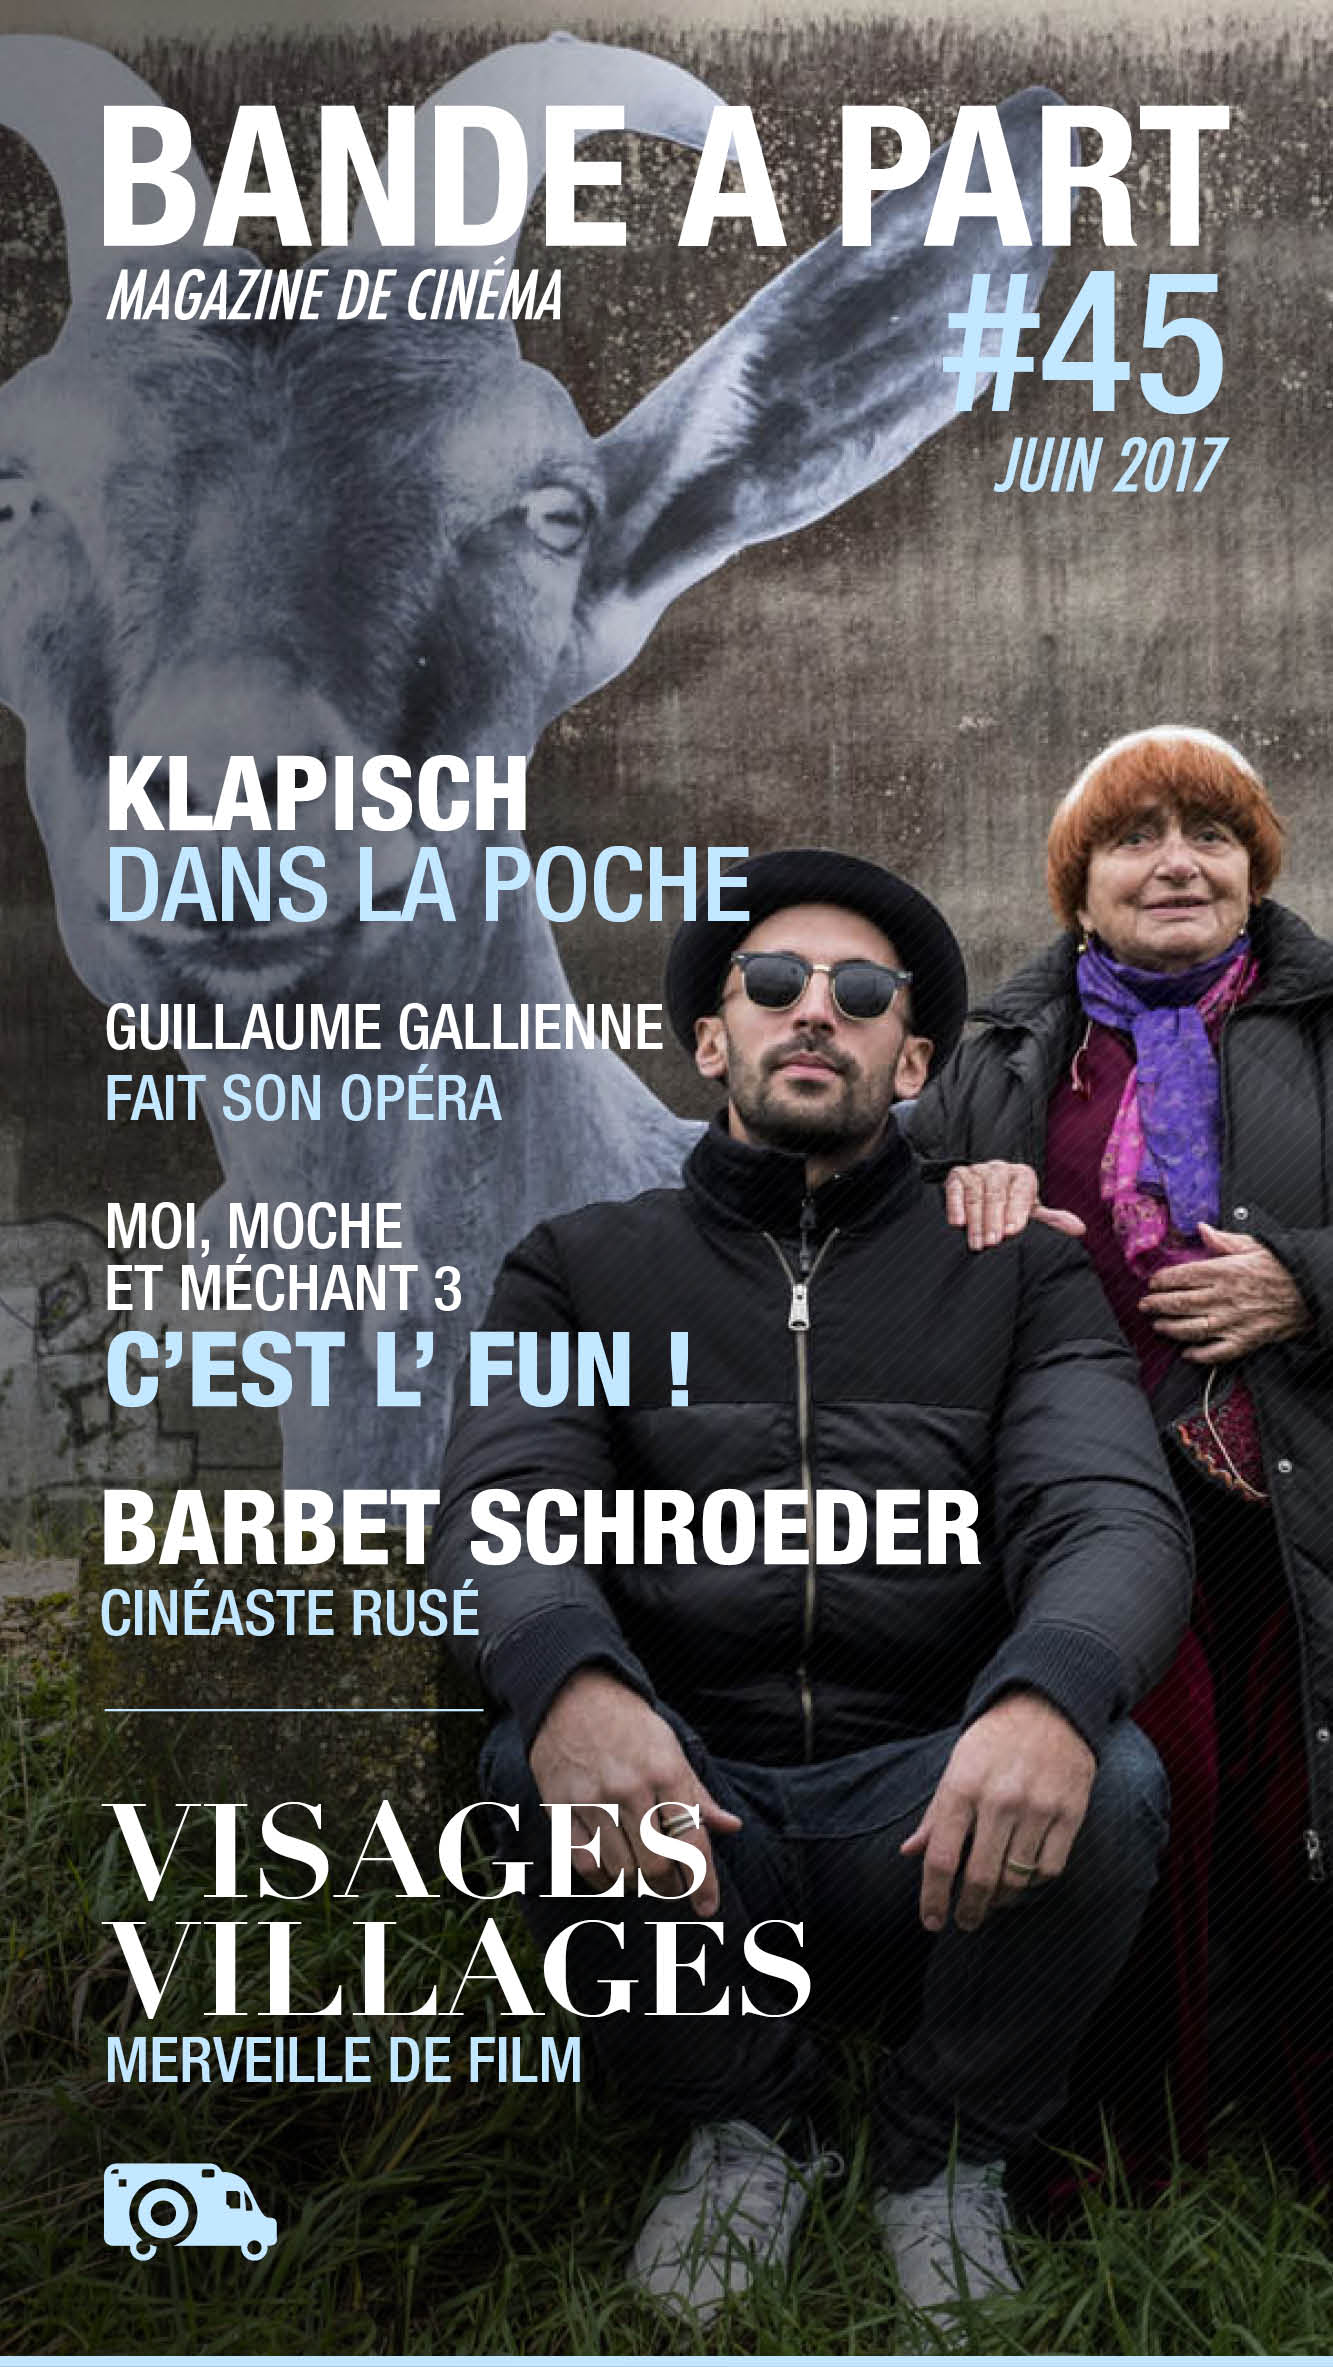 http://www.bande-a-part.fr/wp-content/uploads/2017/06/BAPWEB-Couverture-sortie-bande-a-part-magazine-visages-villages-varda-jr.jpg